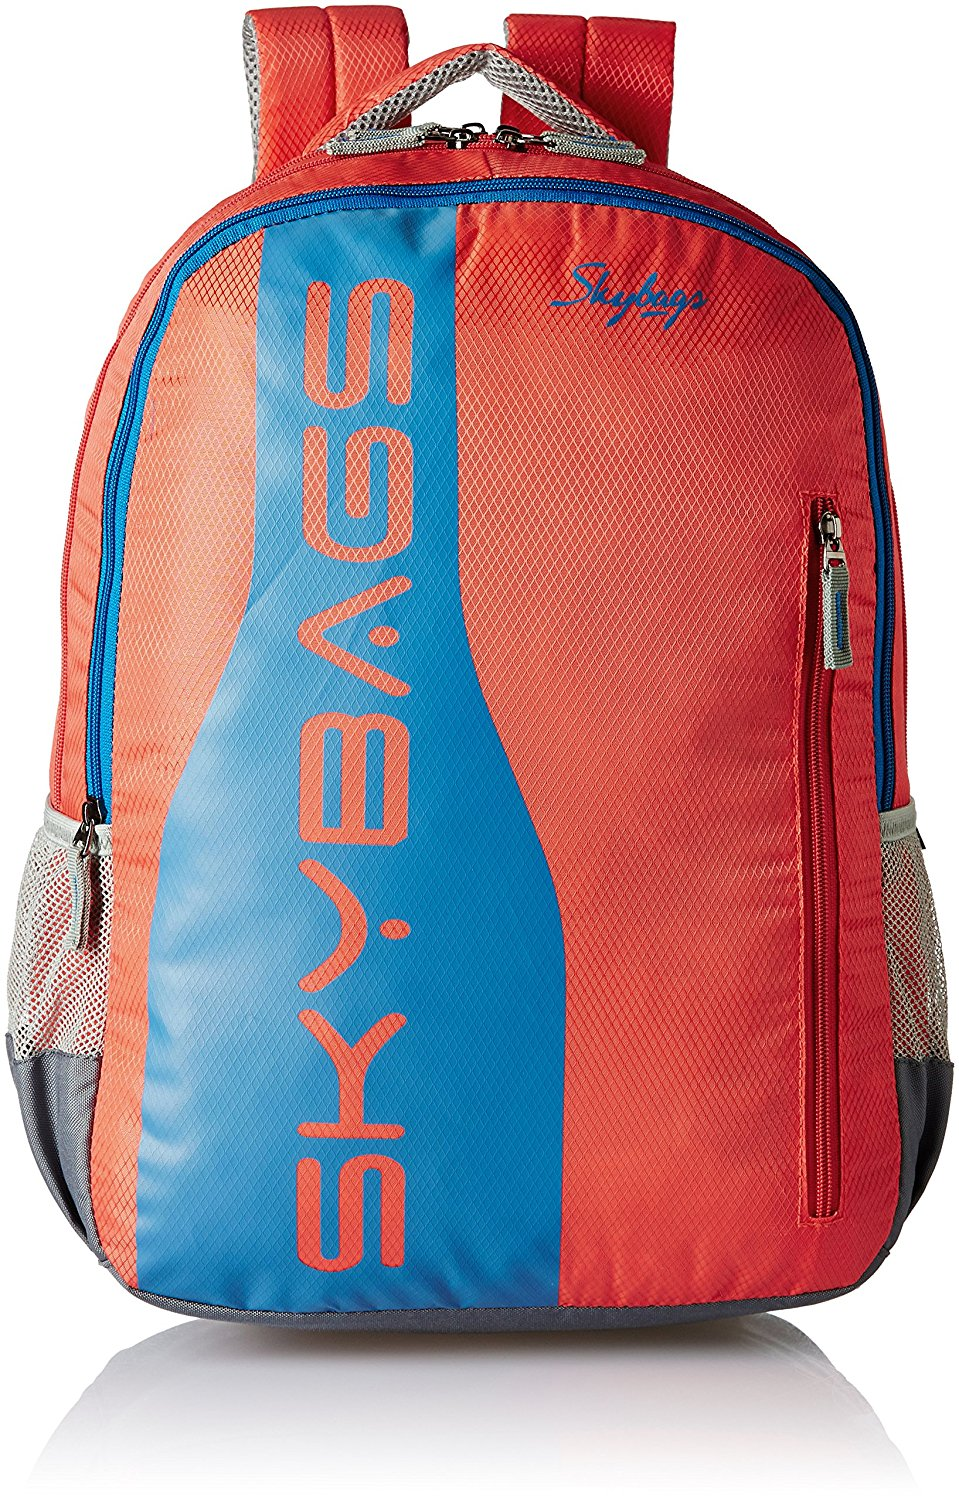 041b9a44317 Upto 80% Off On Skybags Backpack - OMGTricks